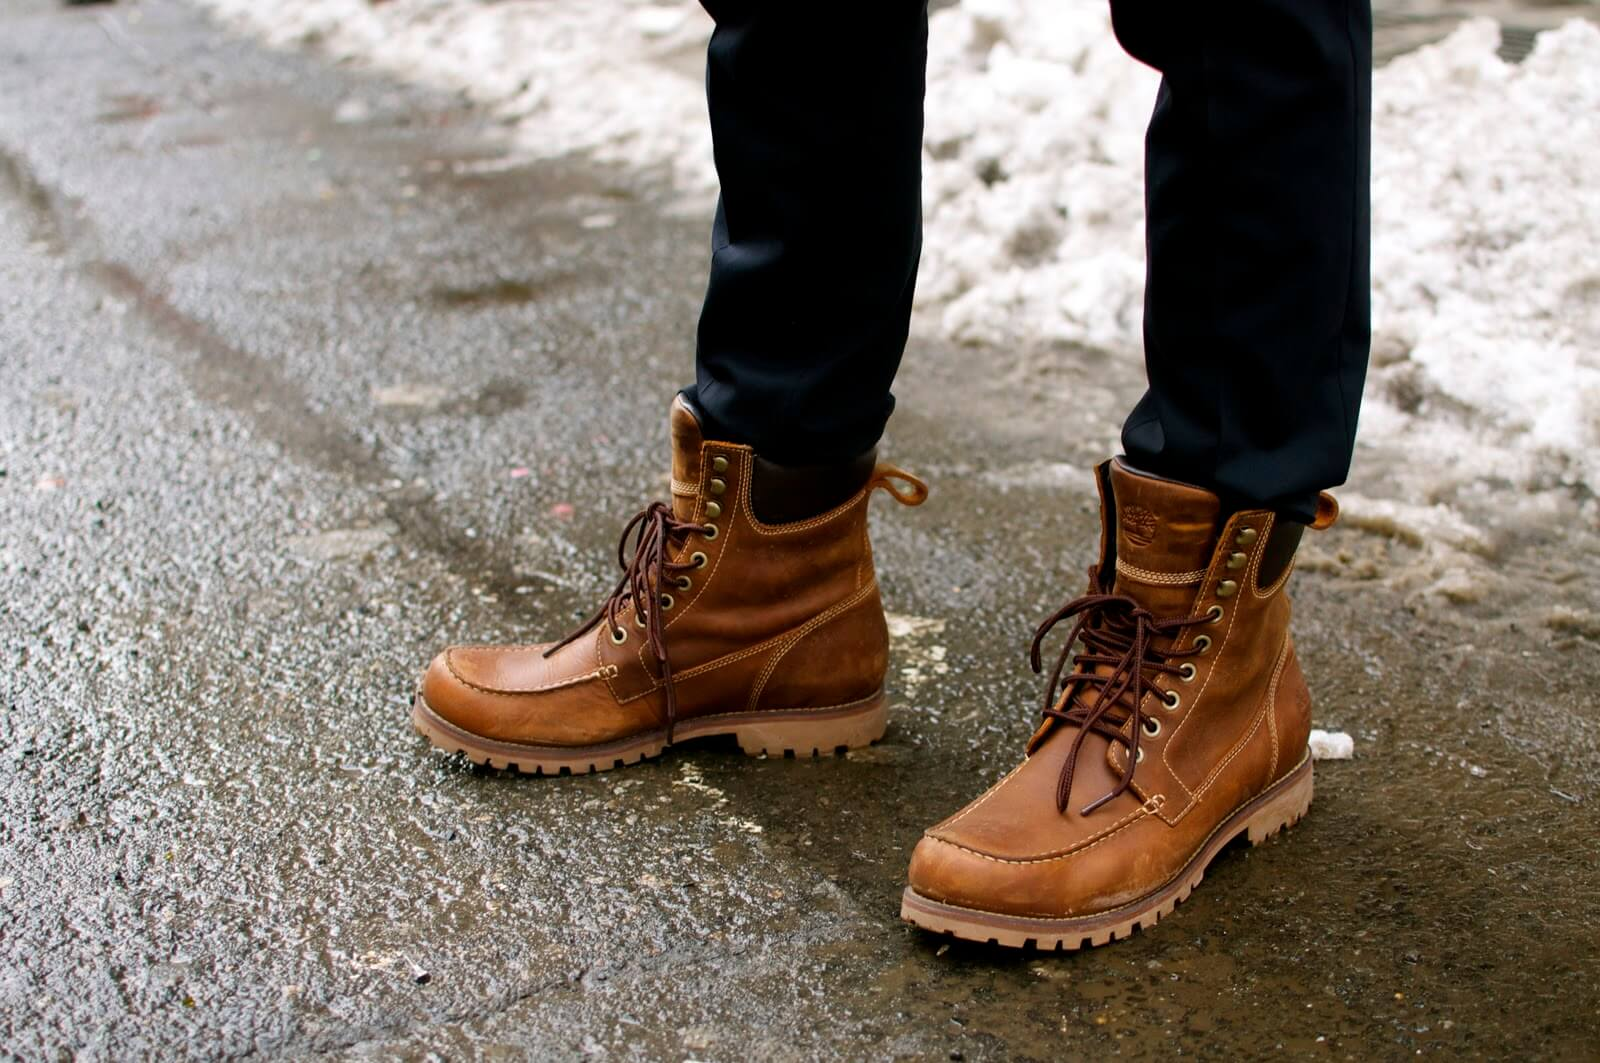 4825c052340 The 10 Best Boots For Men 2019 - OnPointFresh